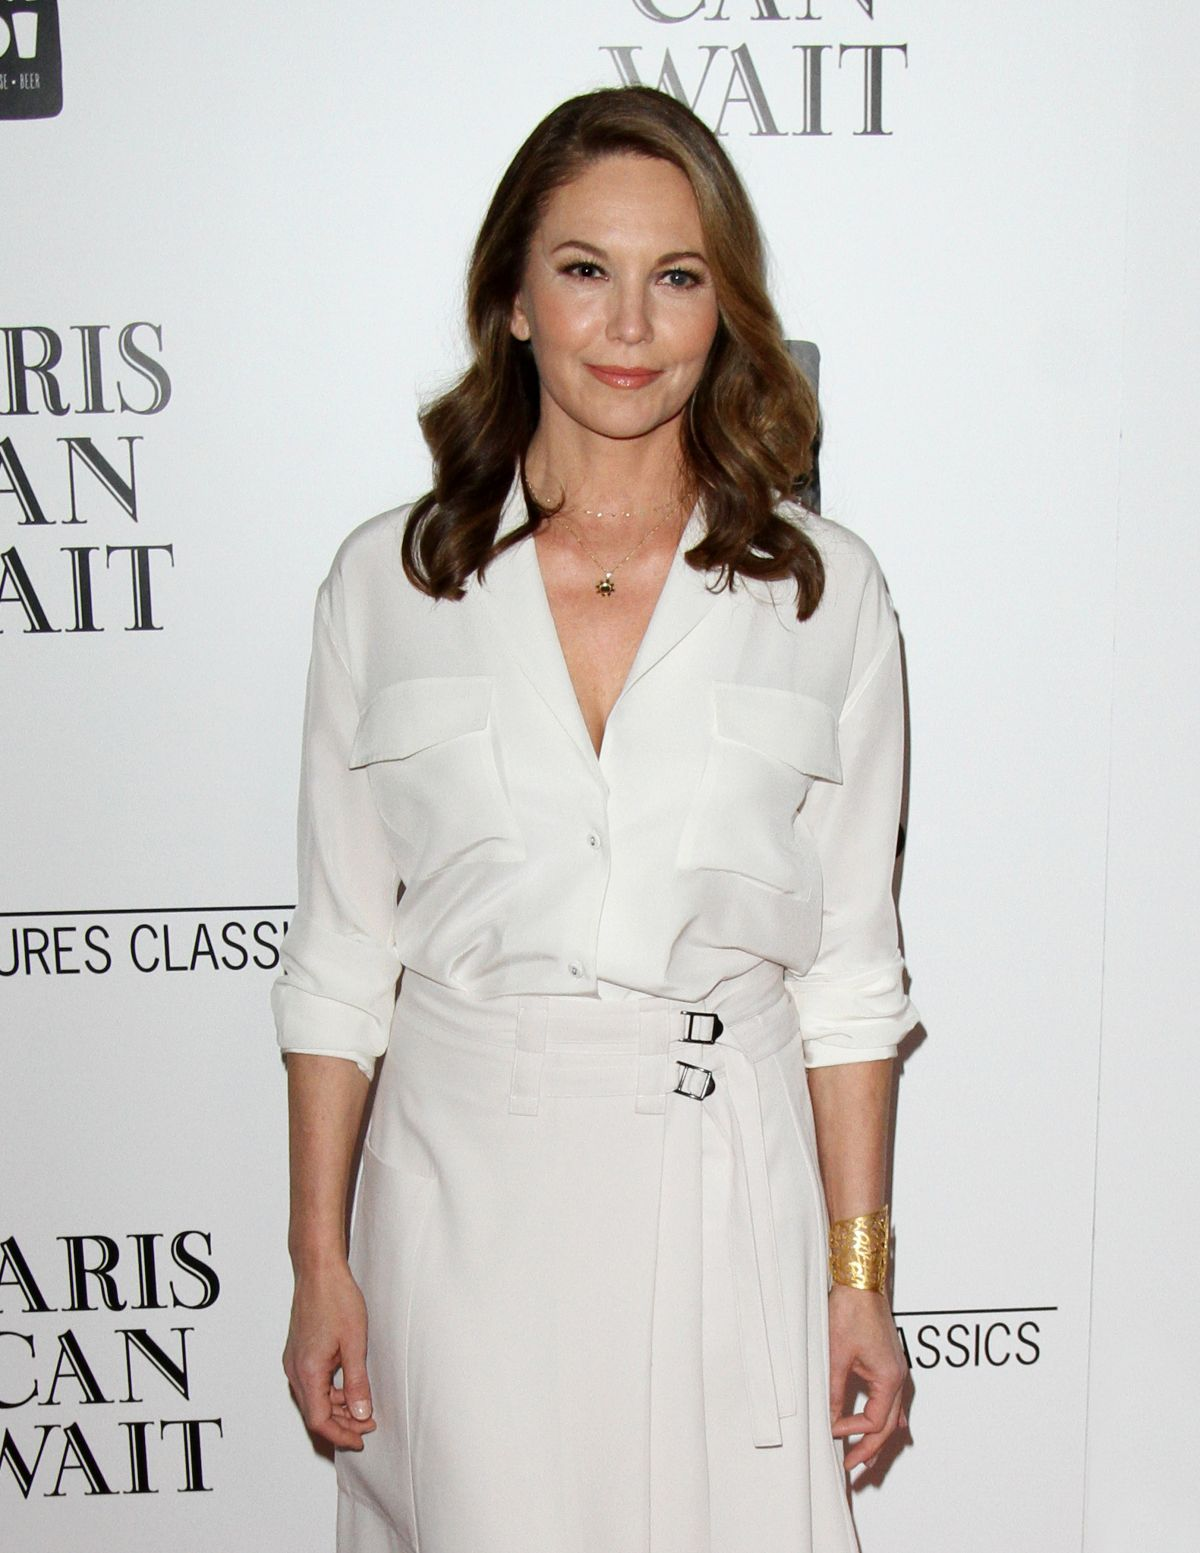 DIANE LANE at Paris Can Wait Premiere in Los Angeles 05/11 ...